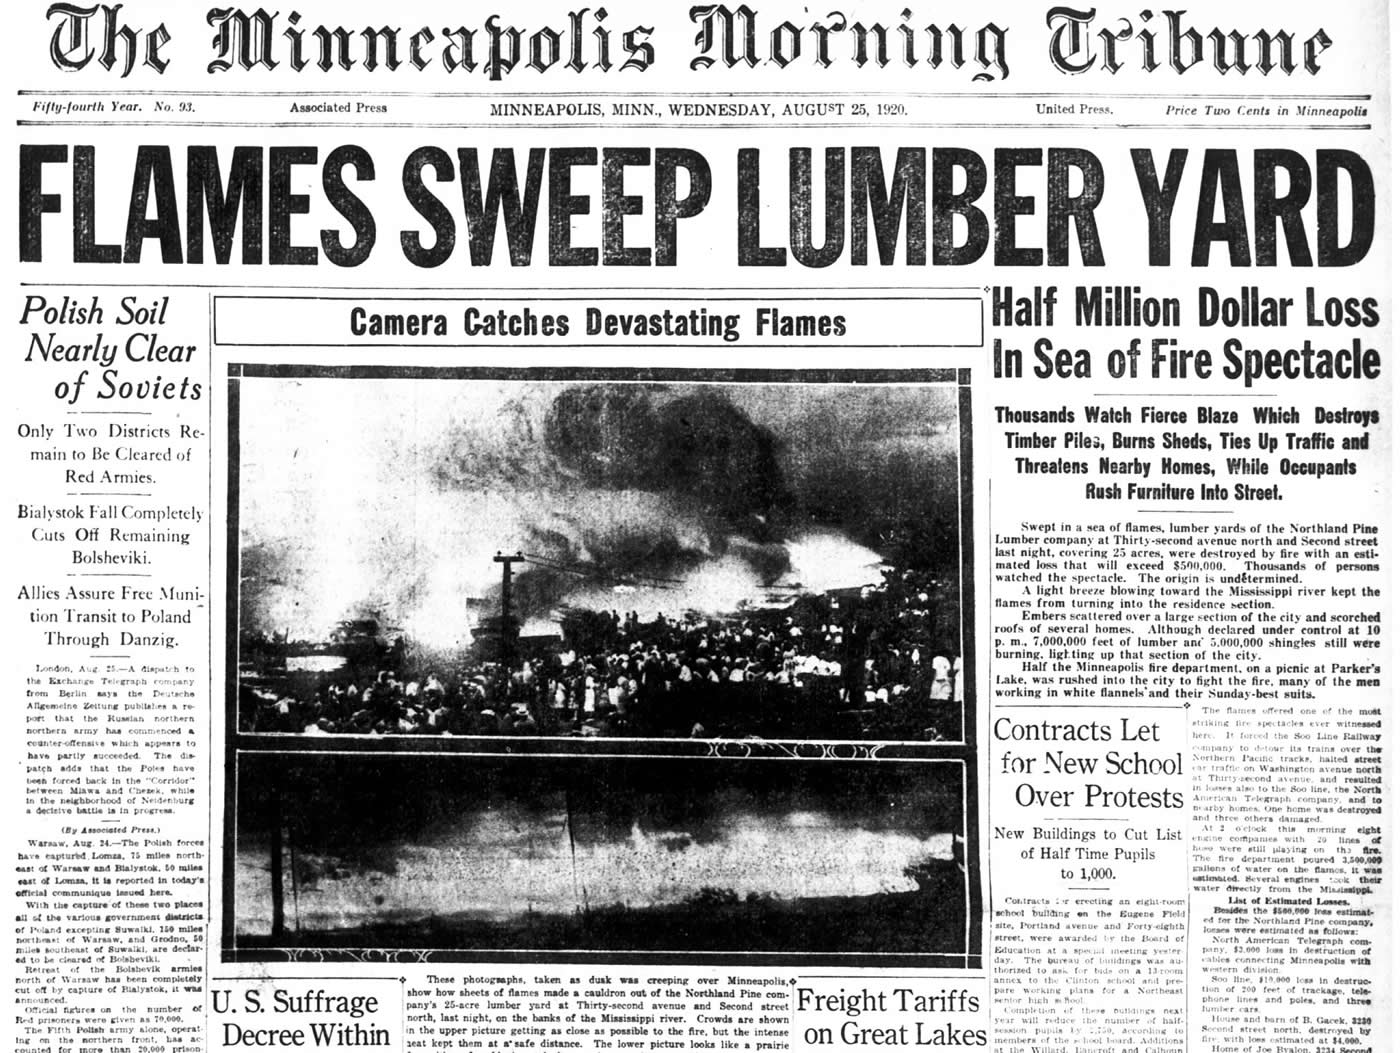 Front page of newspaper with headline and photo of the Northland Pine Company fire, August 25, 1920.